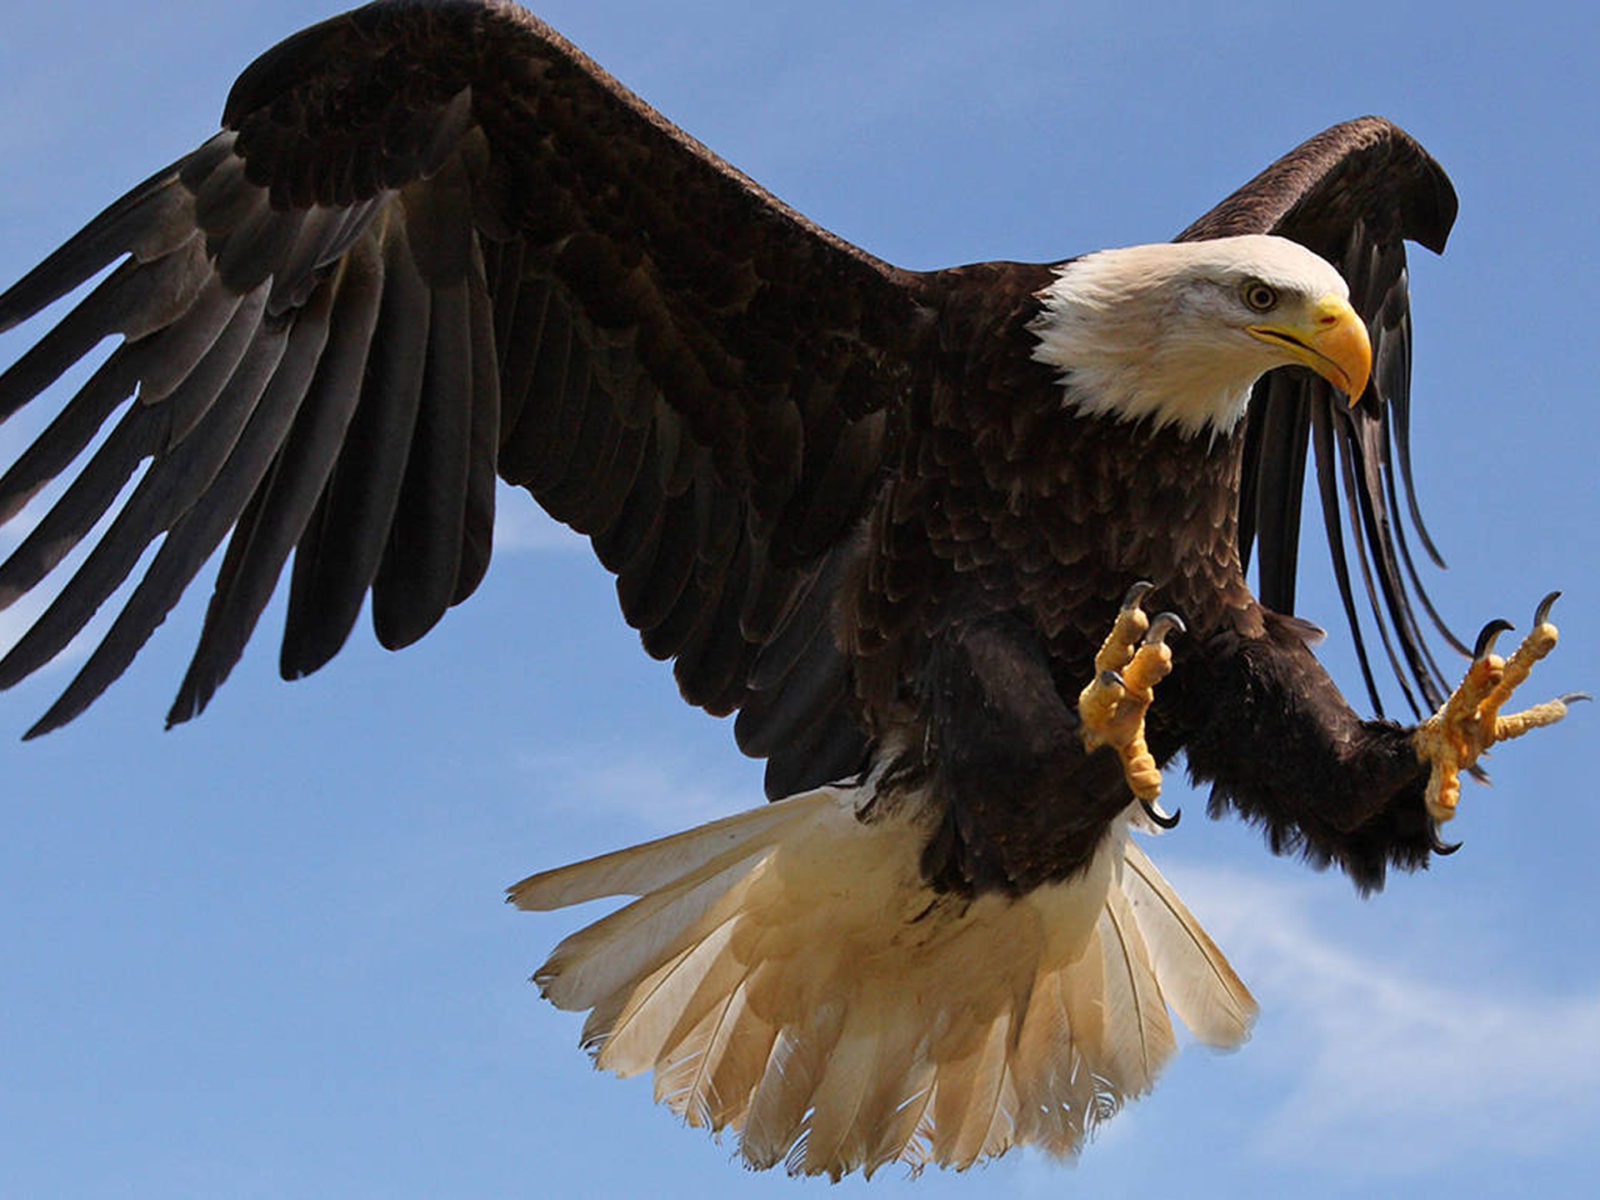 Flamingo Iphone Wallpaper Bald Eagle Attack With Strong Sharp Claws Desktop